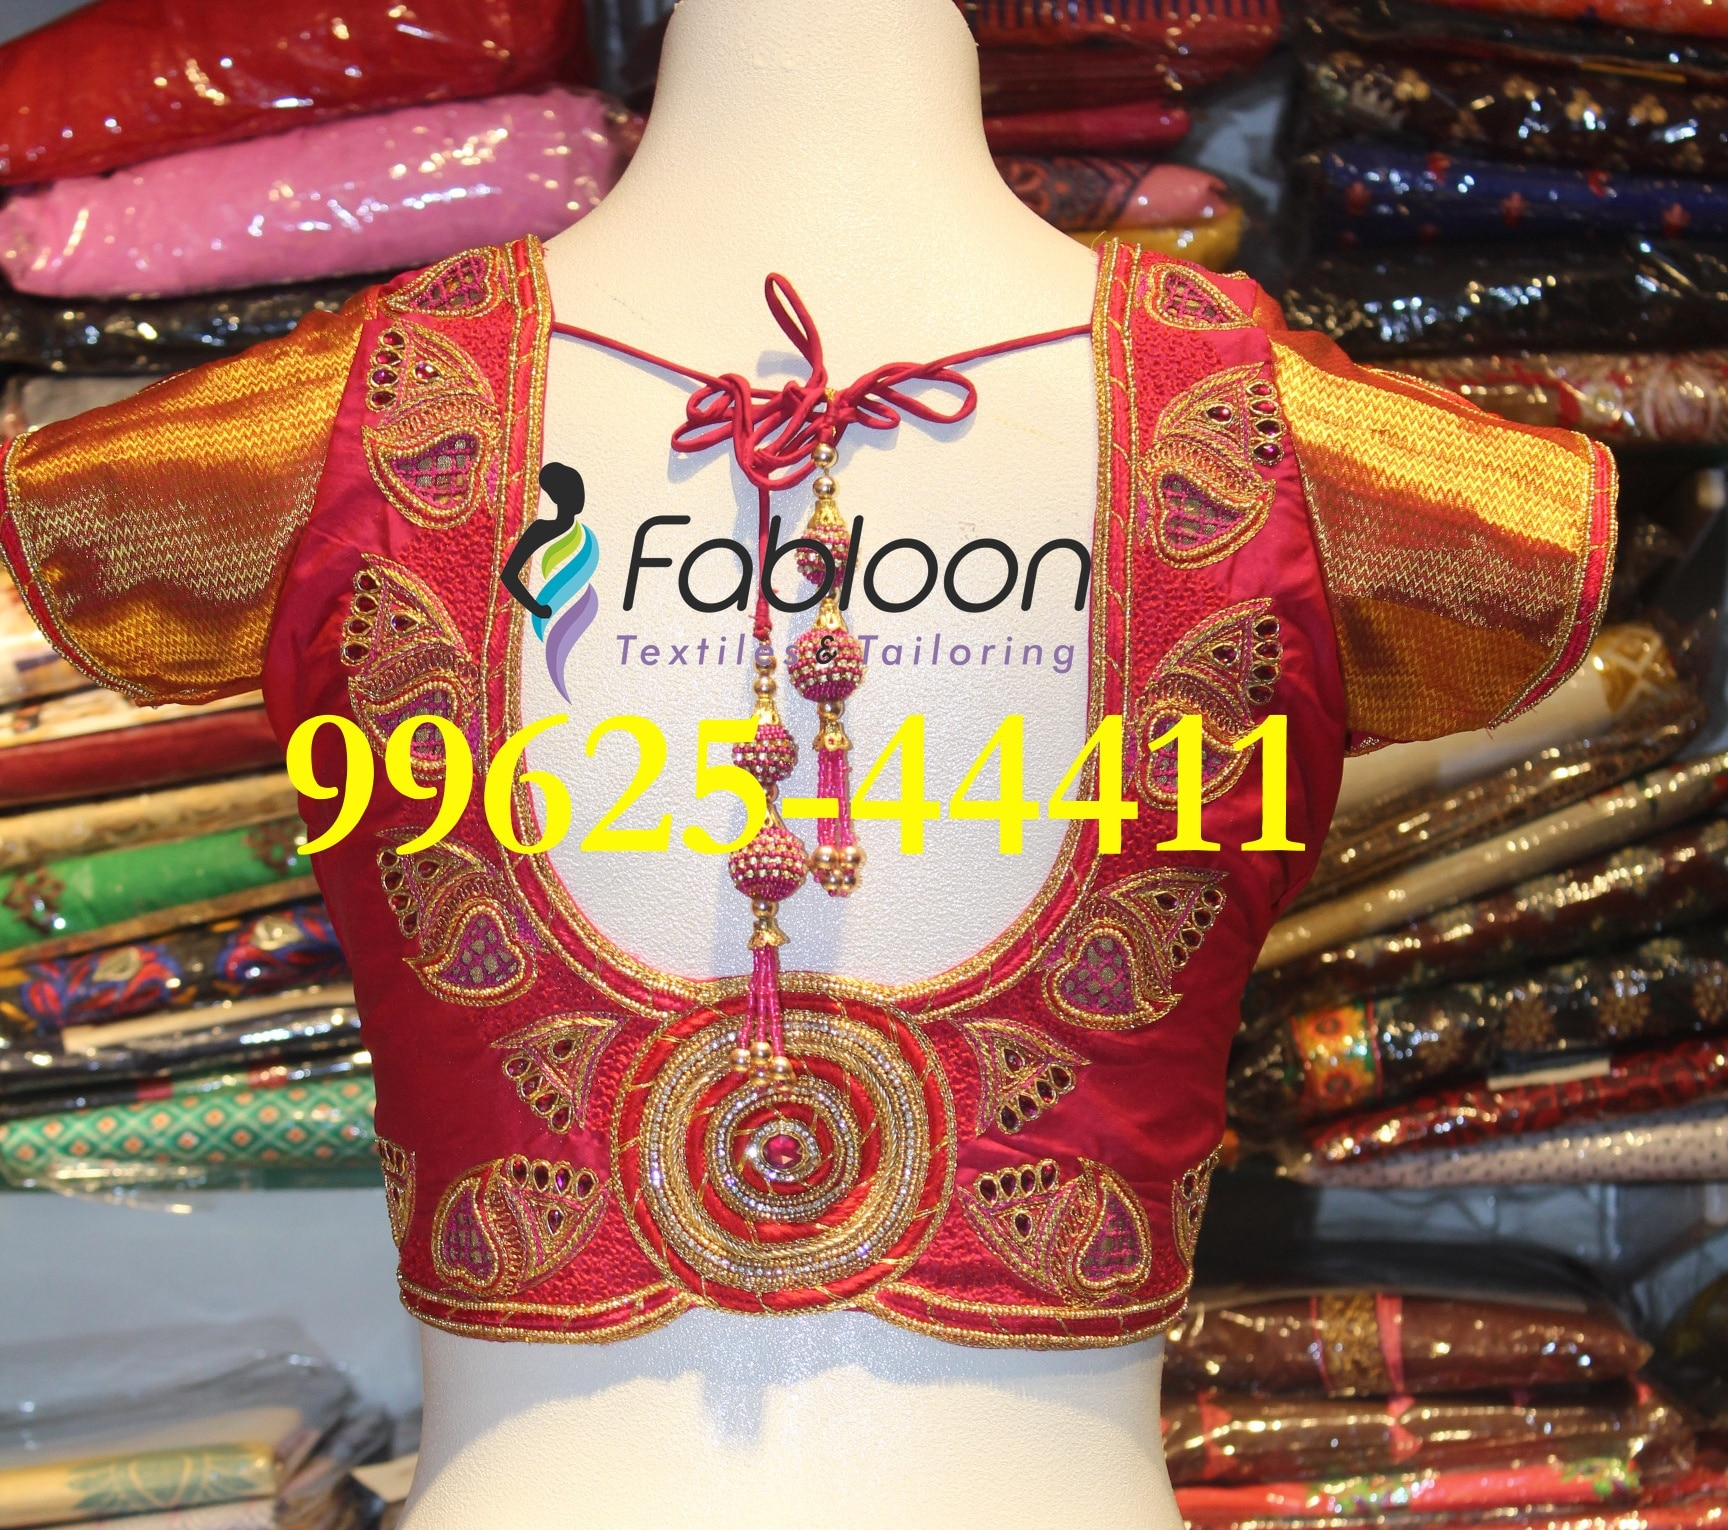 Bridal Blouse At Fabloon Fashion Boutique And Designer Tailoring In Vadapalani, Mob: +91 9962544411, 044 48644411.  Pattu Blouse Designs In Vadapalani. Net Saree Blouse At Kodambakkam. Golden Blouse Design Near Koyembedu. Net Blouse Designs Around Ashok Nagar. Check all the updates for more collections.